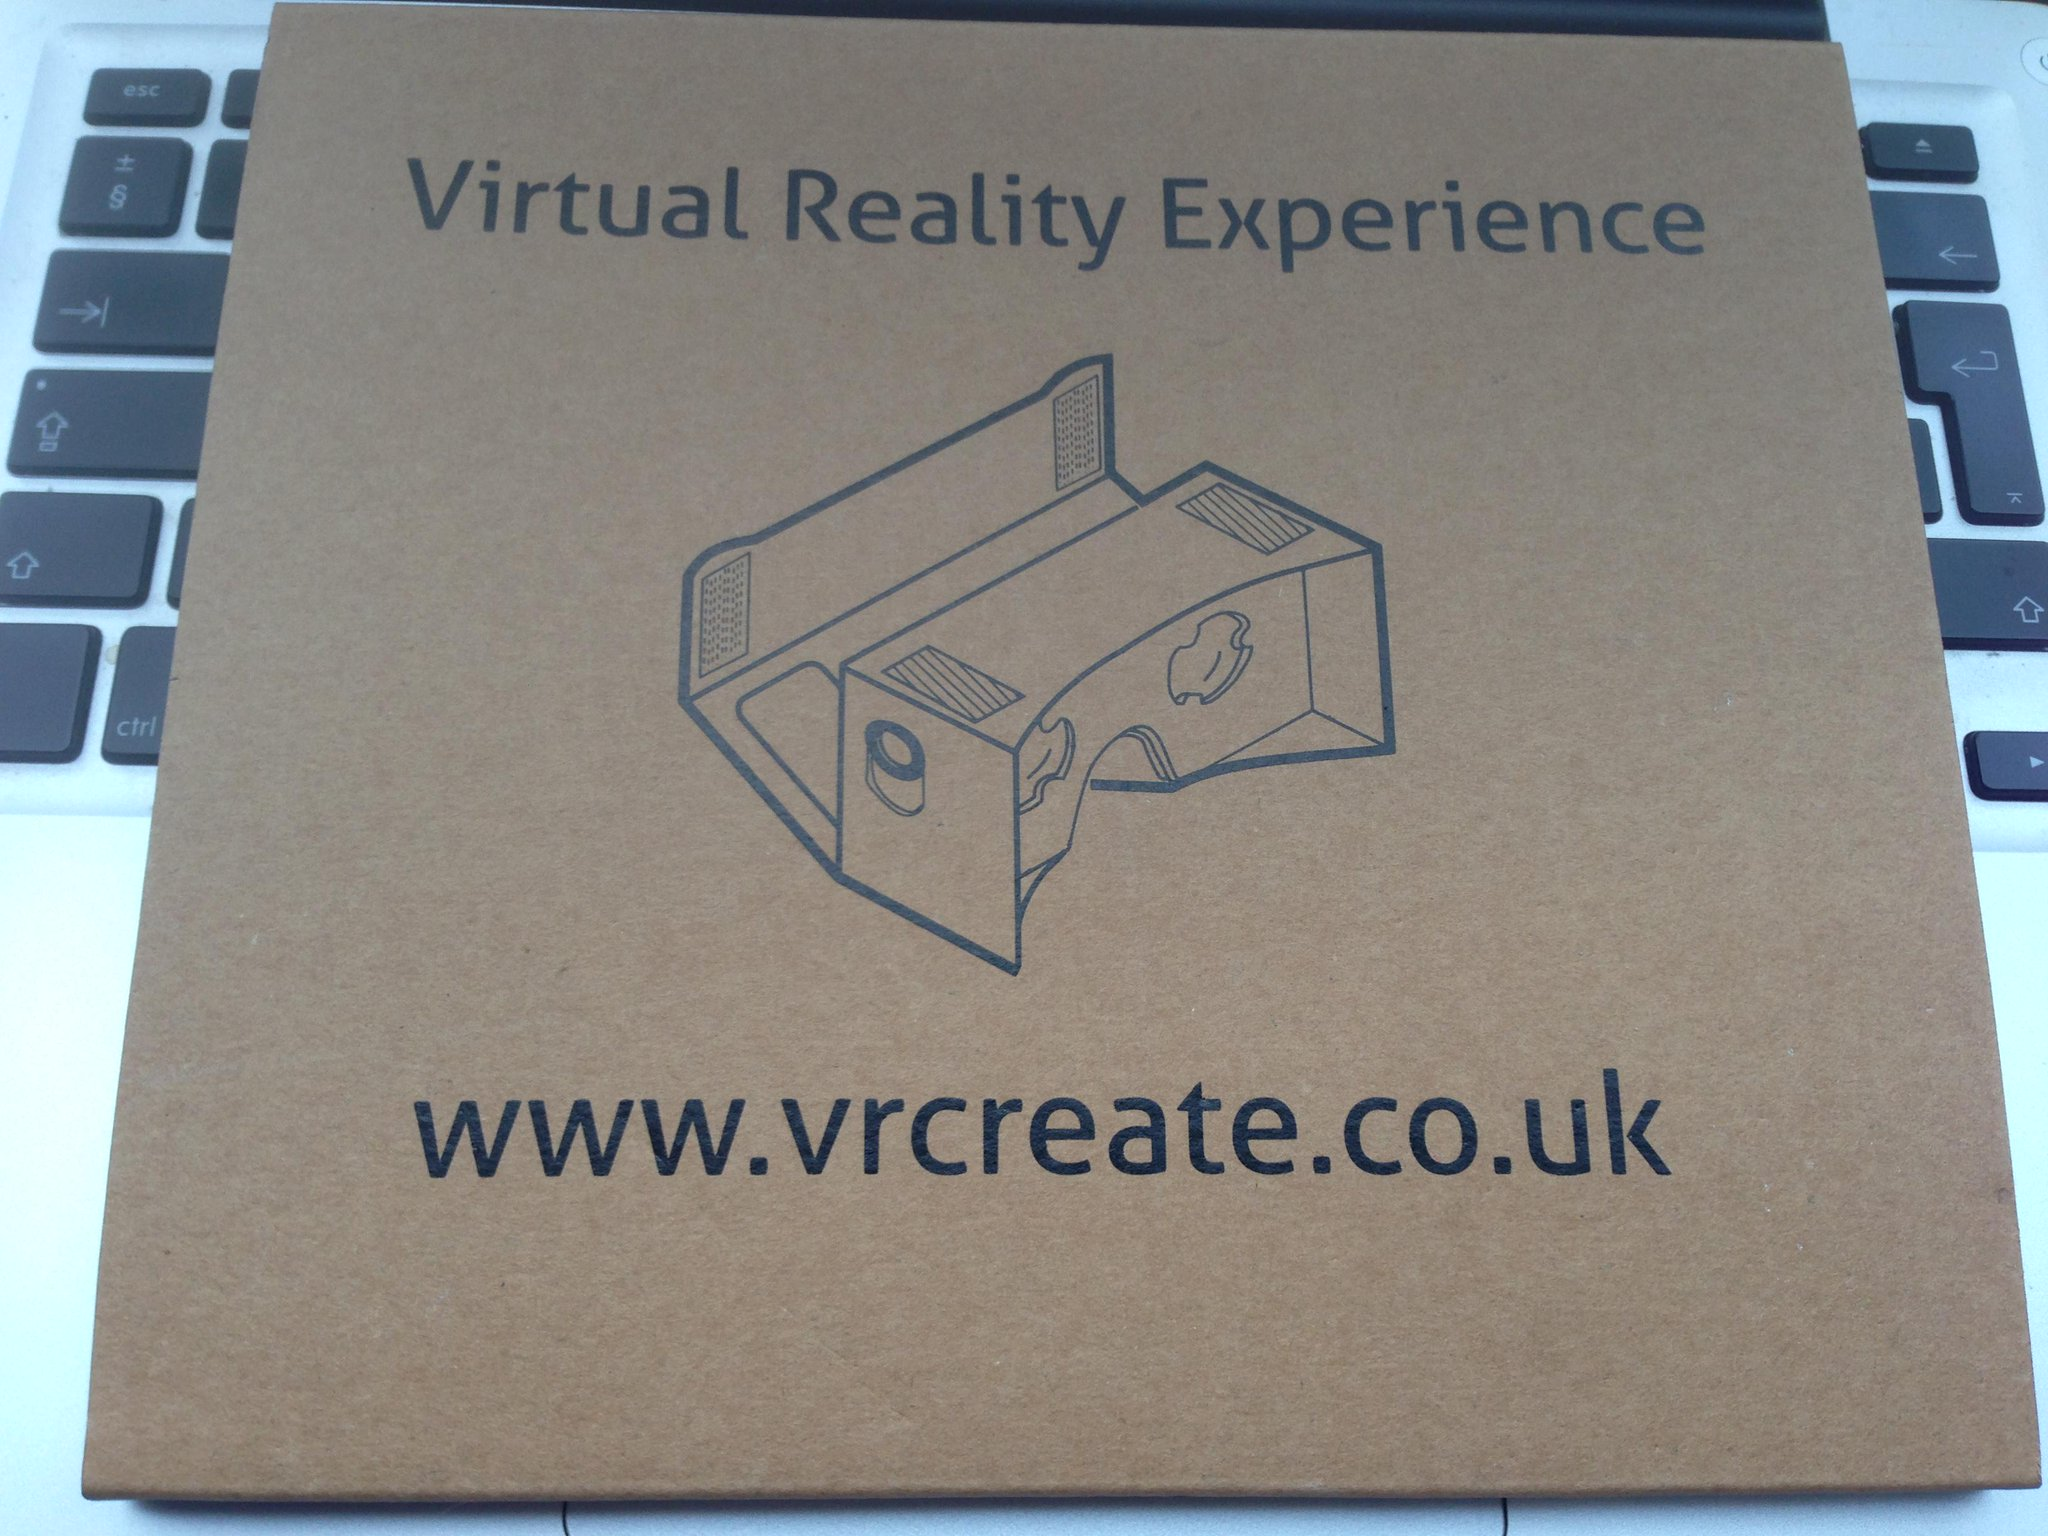 Got a little techy pressie for the BR team to play with from #adtechlondon and @VRCreate... VR headsets at the ready! http://t.co/m6qzruzeiH